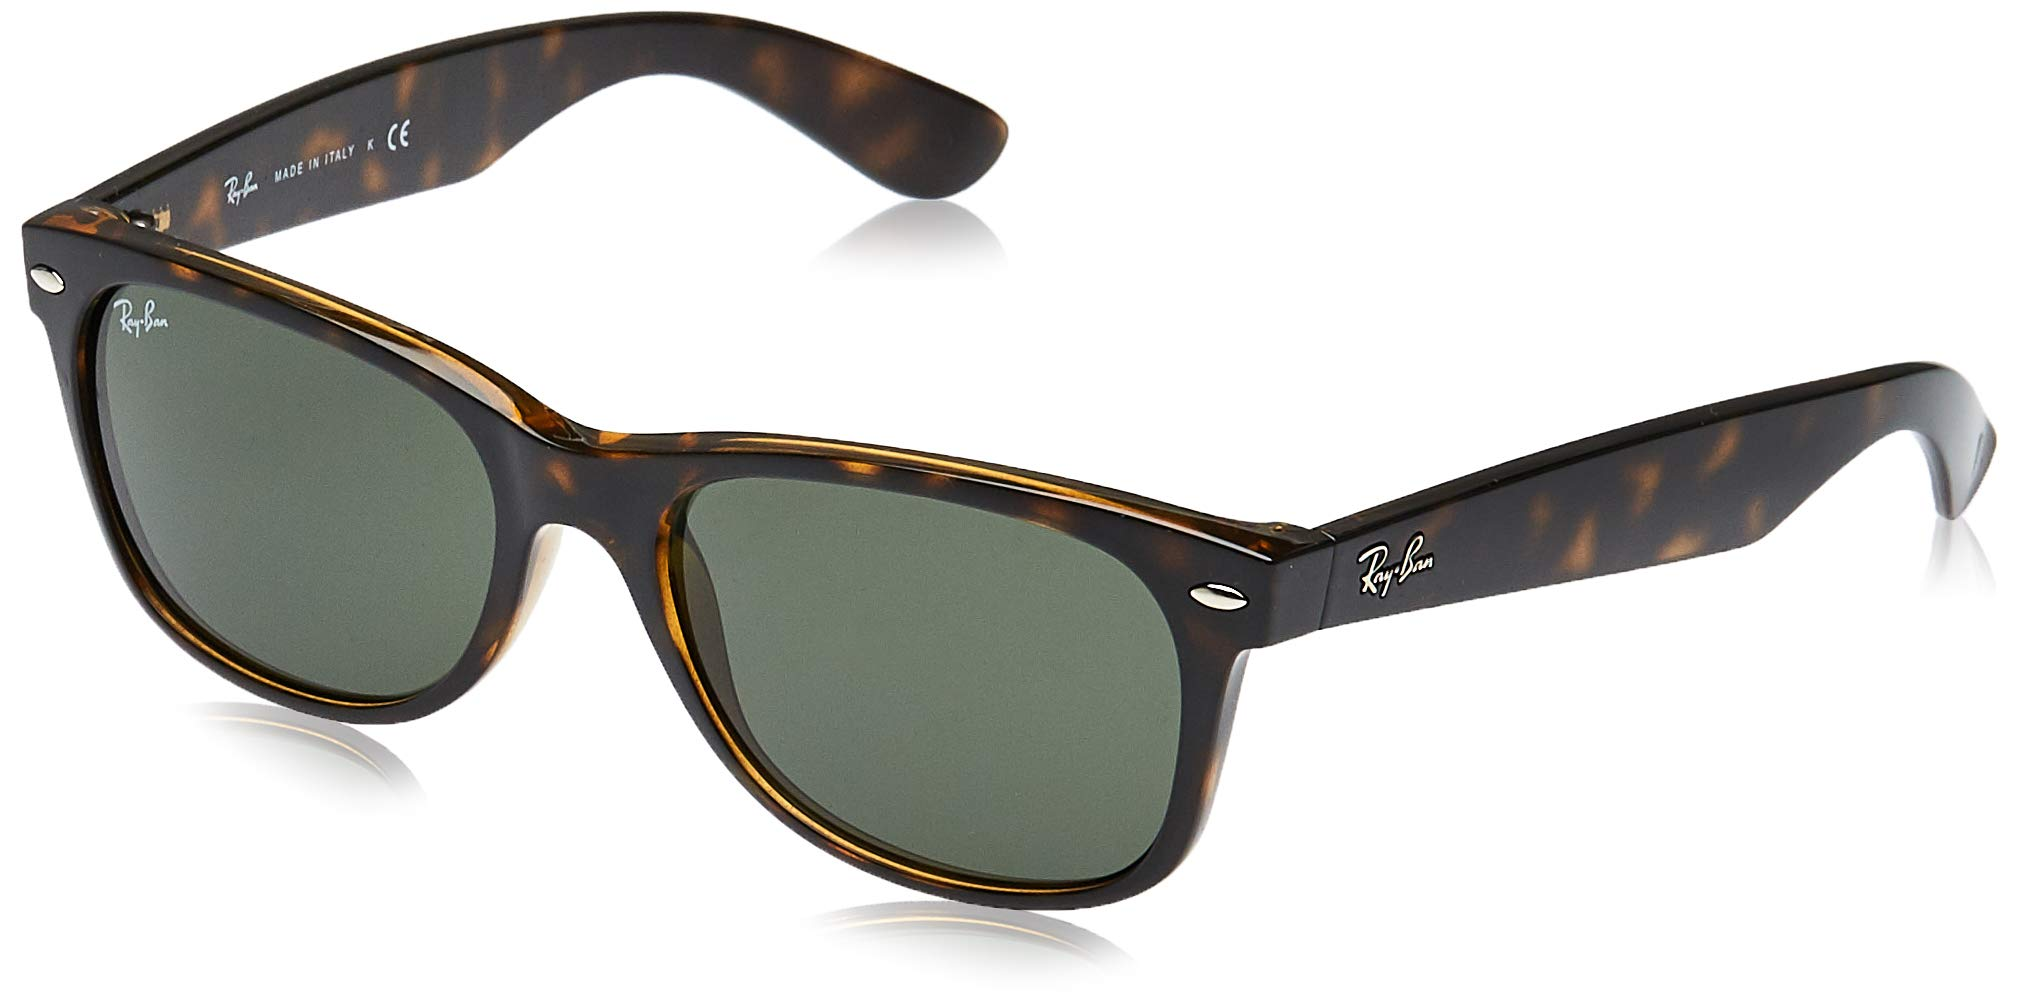 RAY-BAN RB2132 New Wayfarer Sunglasses, Tortoise/Green, 55 mm by RAY-BAN